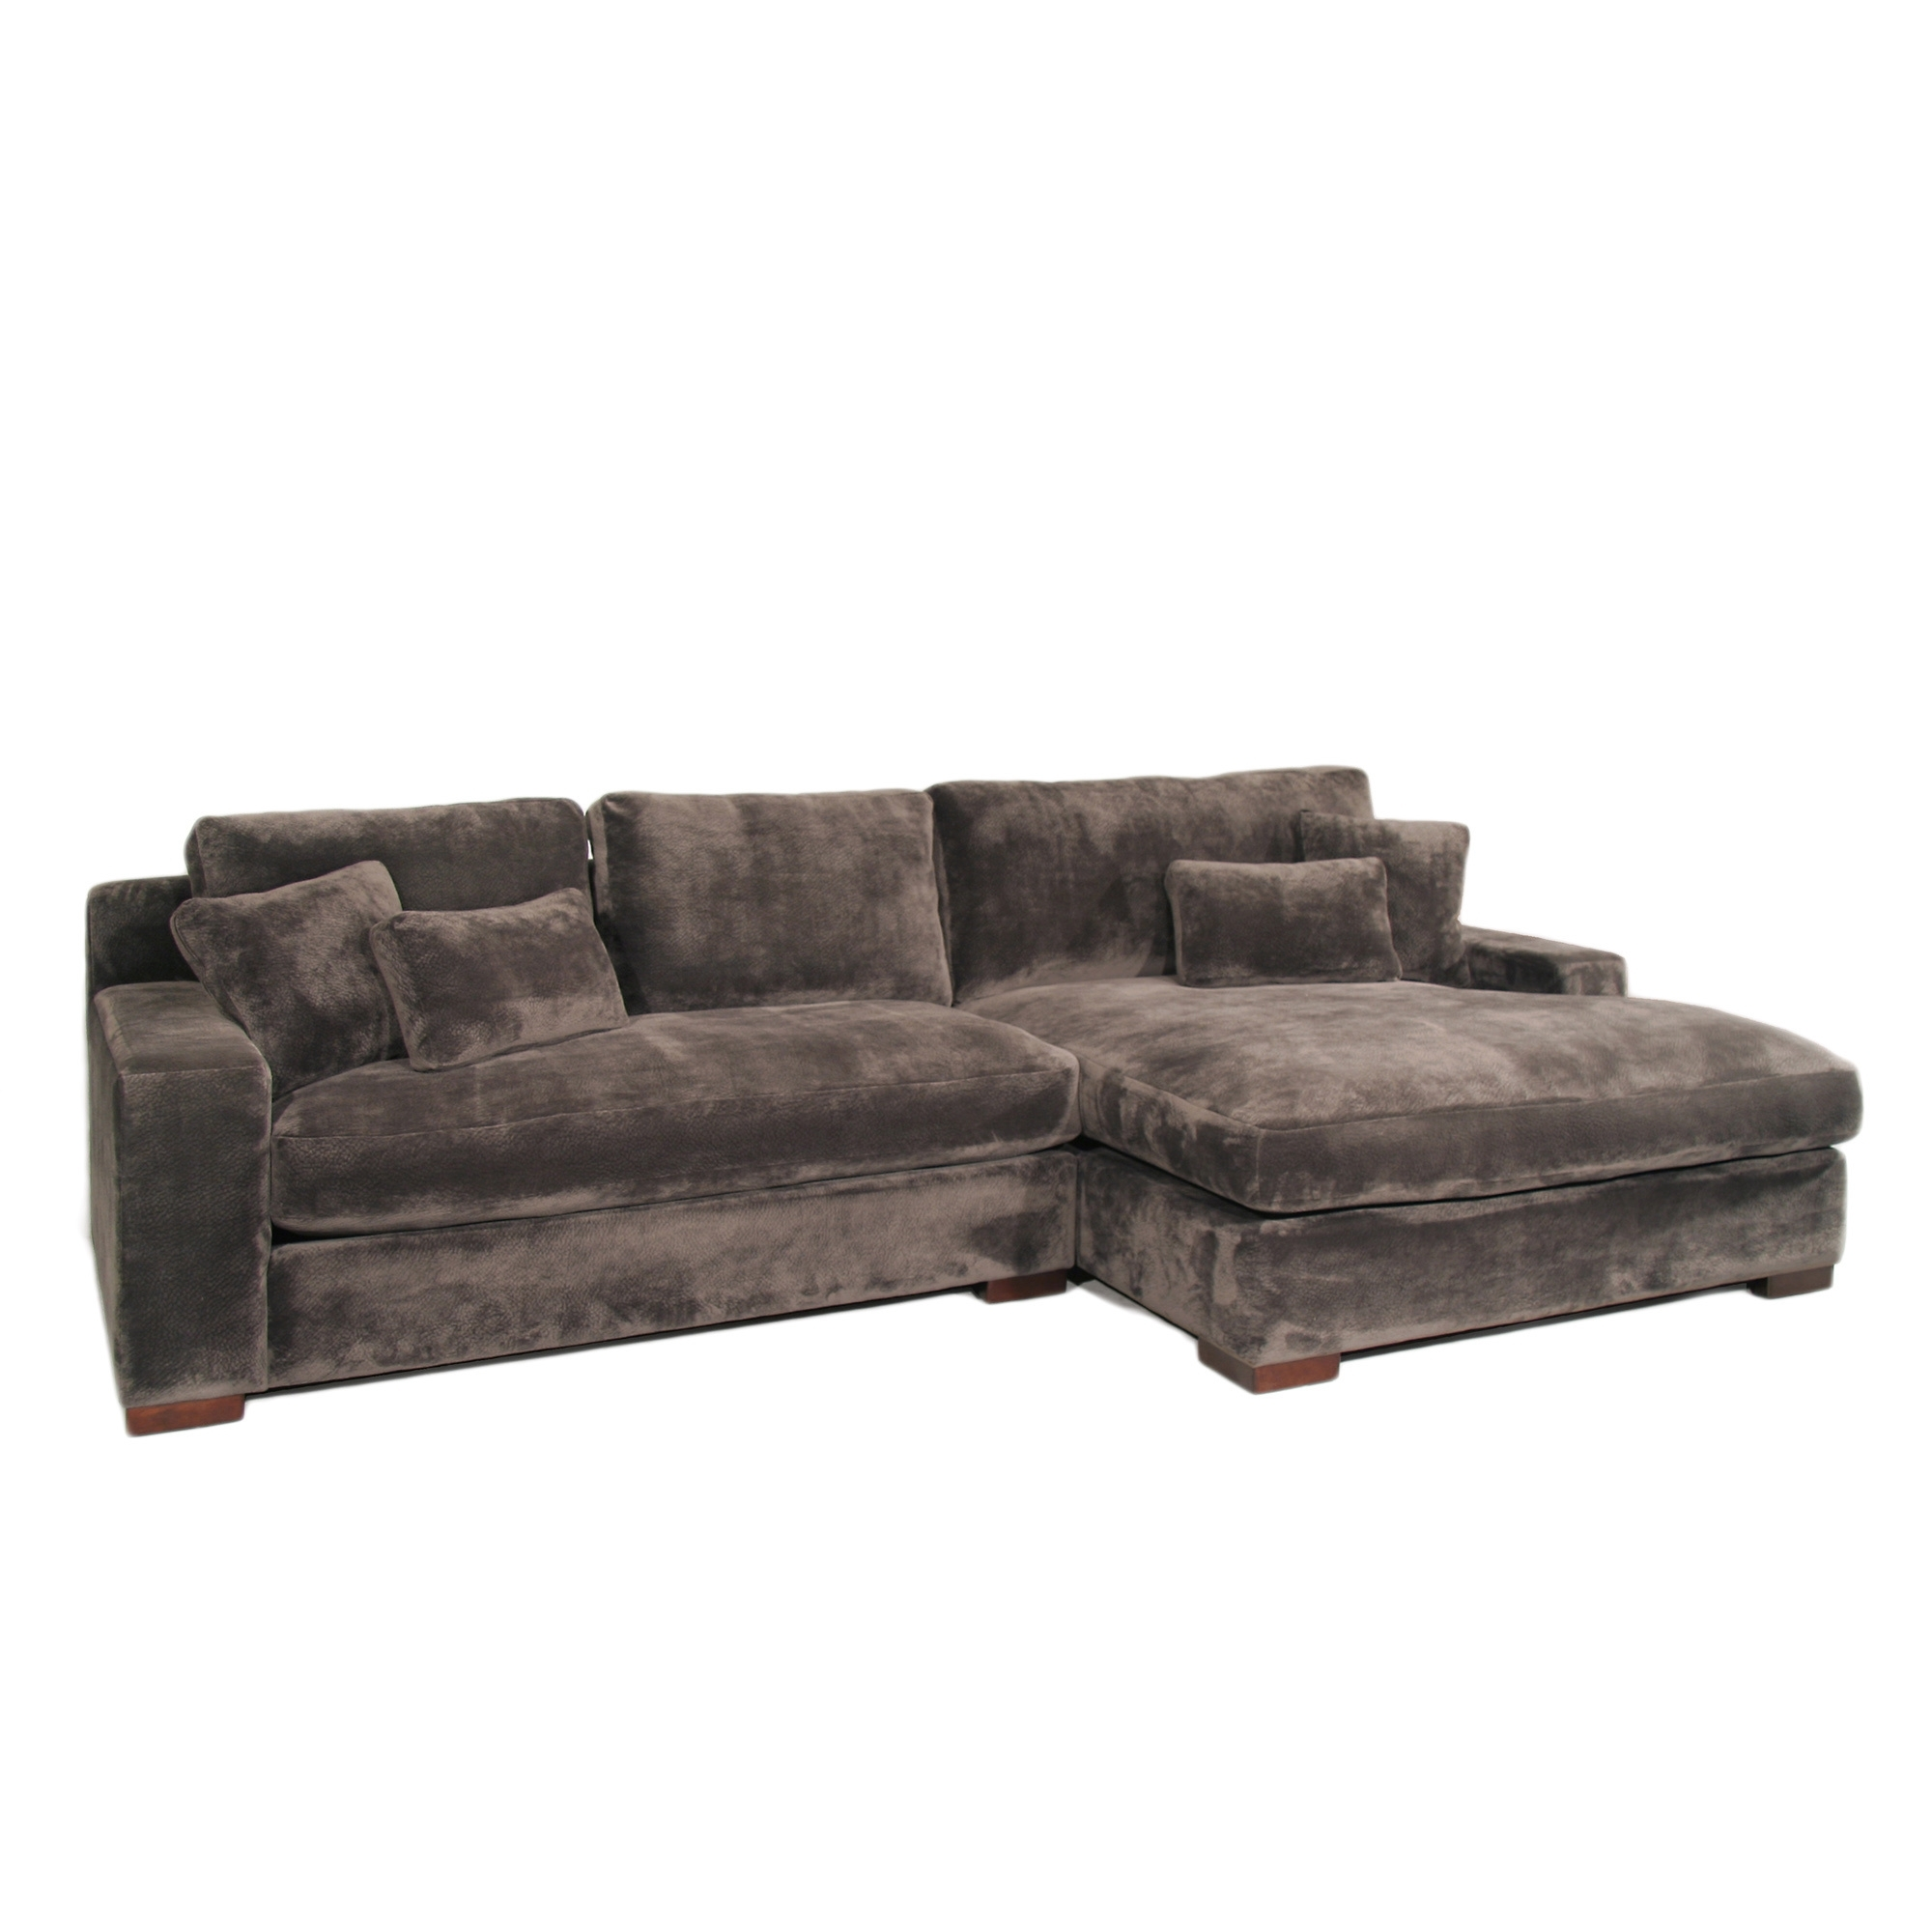 The Casual Contemporary Doris Two Piece Chaise Sectional Covered In Delano Smoke 3 Piece Sectionals (Image 23 of 25)